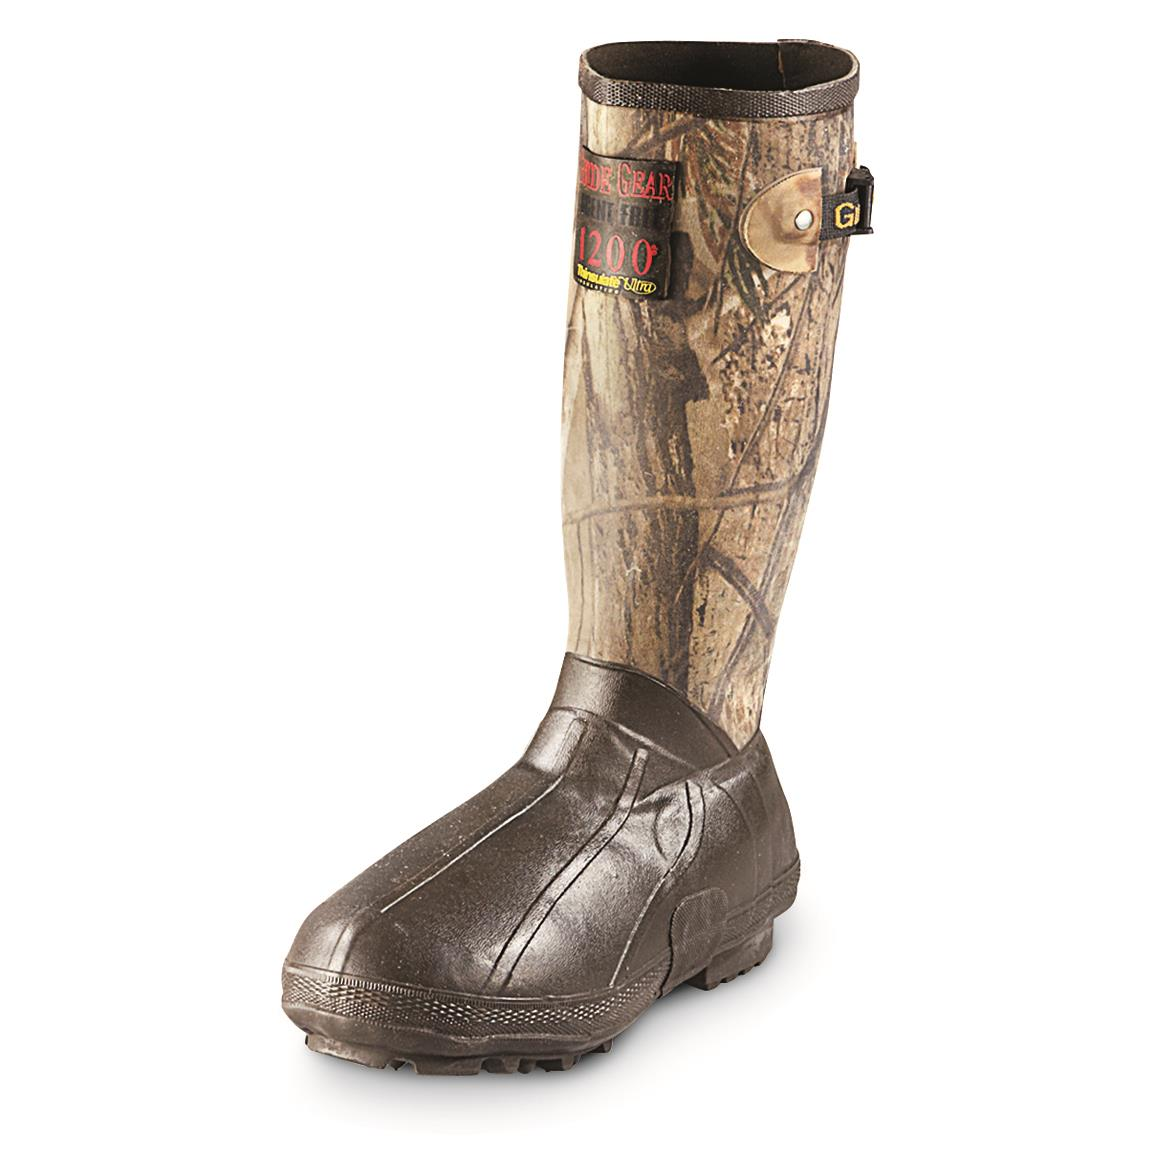 Rubber shaft is wrapped in canvas, with Realtree AP camo pattern